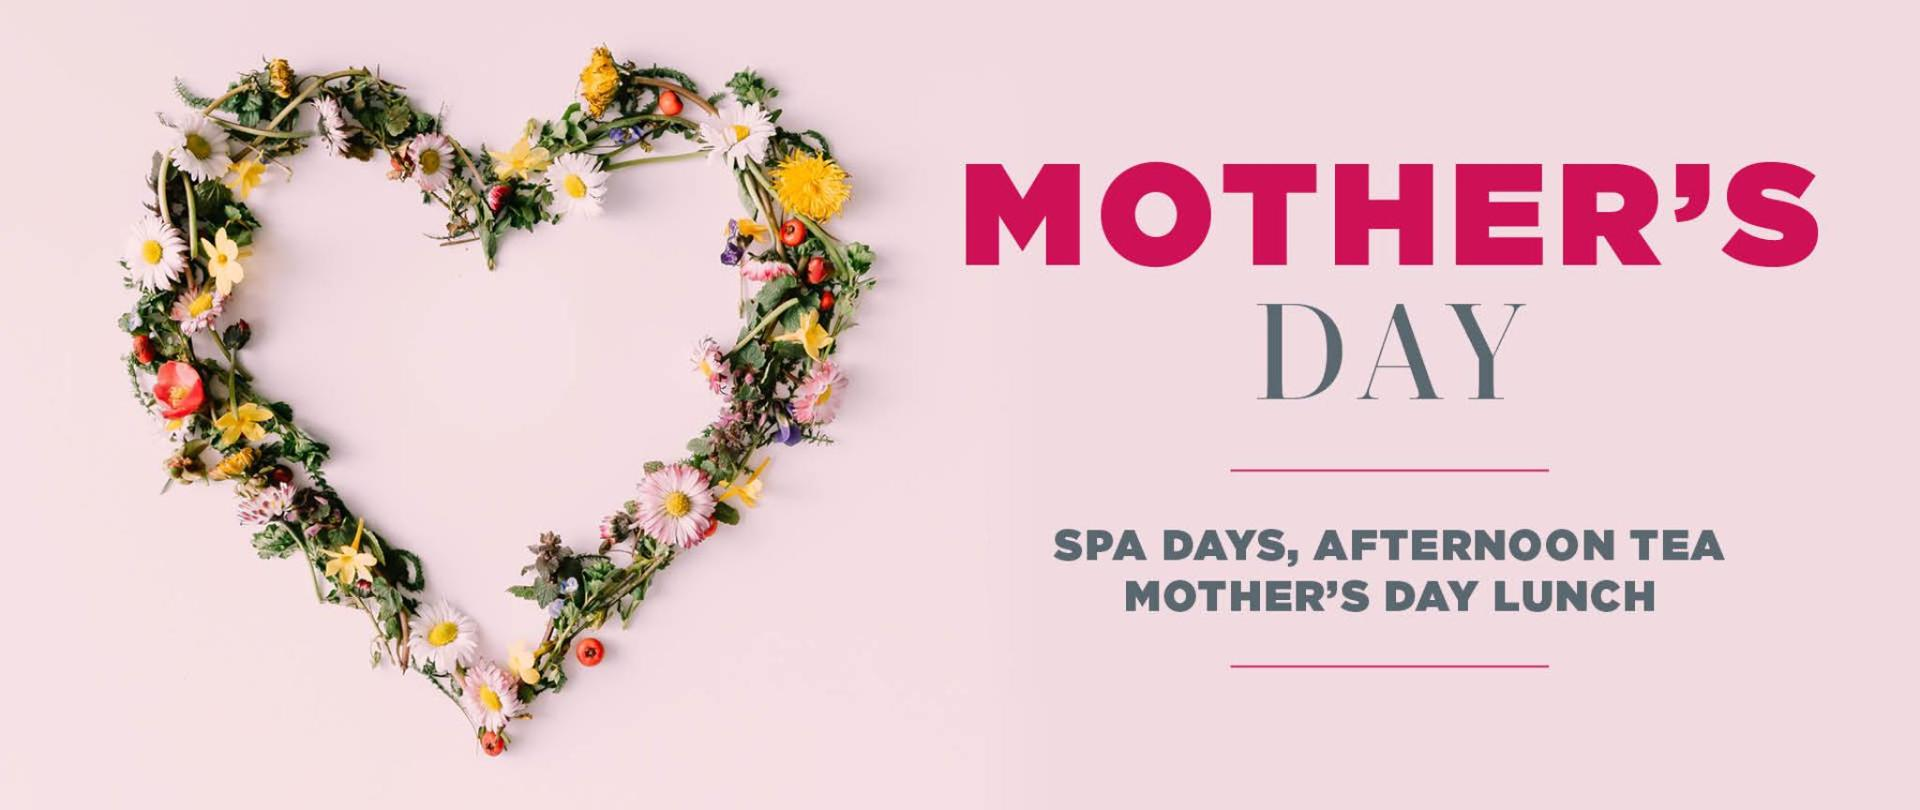 19480_mother's_day_homepage_s2.jpg